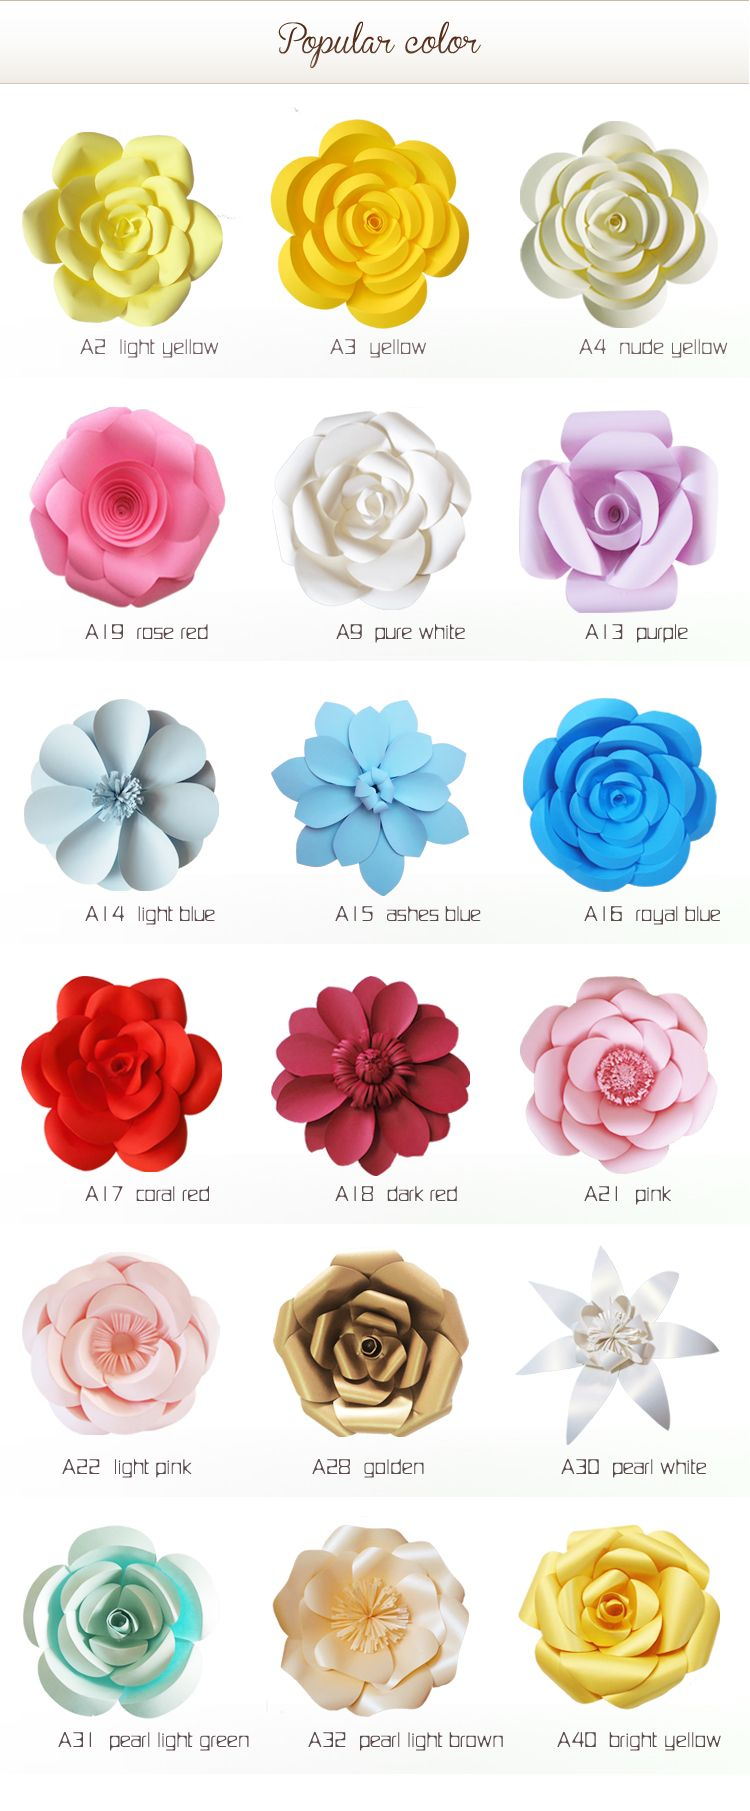 Decorative shopping mall artificial flowers wfah 05 buy discover thousands of images about diy giant paper flowers easy backdrop flower tutorial with printable flower templates mightylinksfo